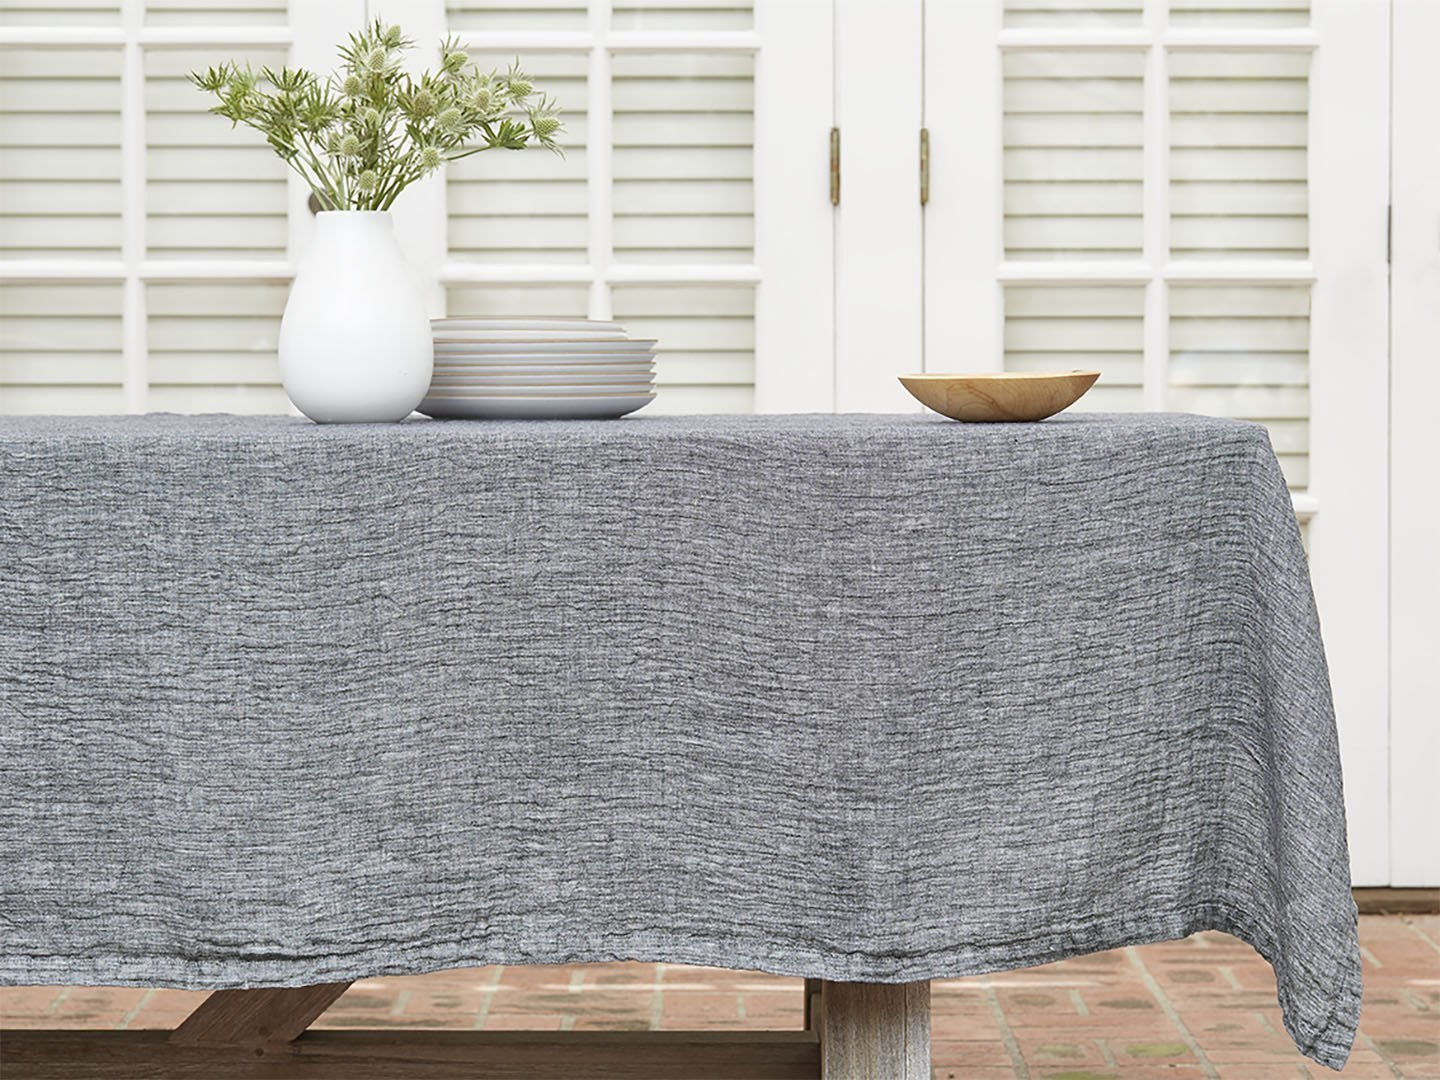 Photo 1 of 1 in Parachute Linen Tablecloth